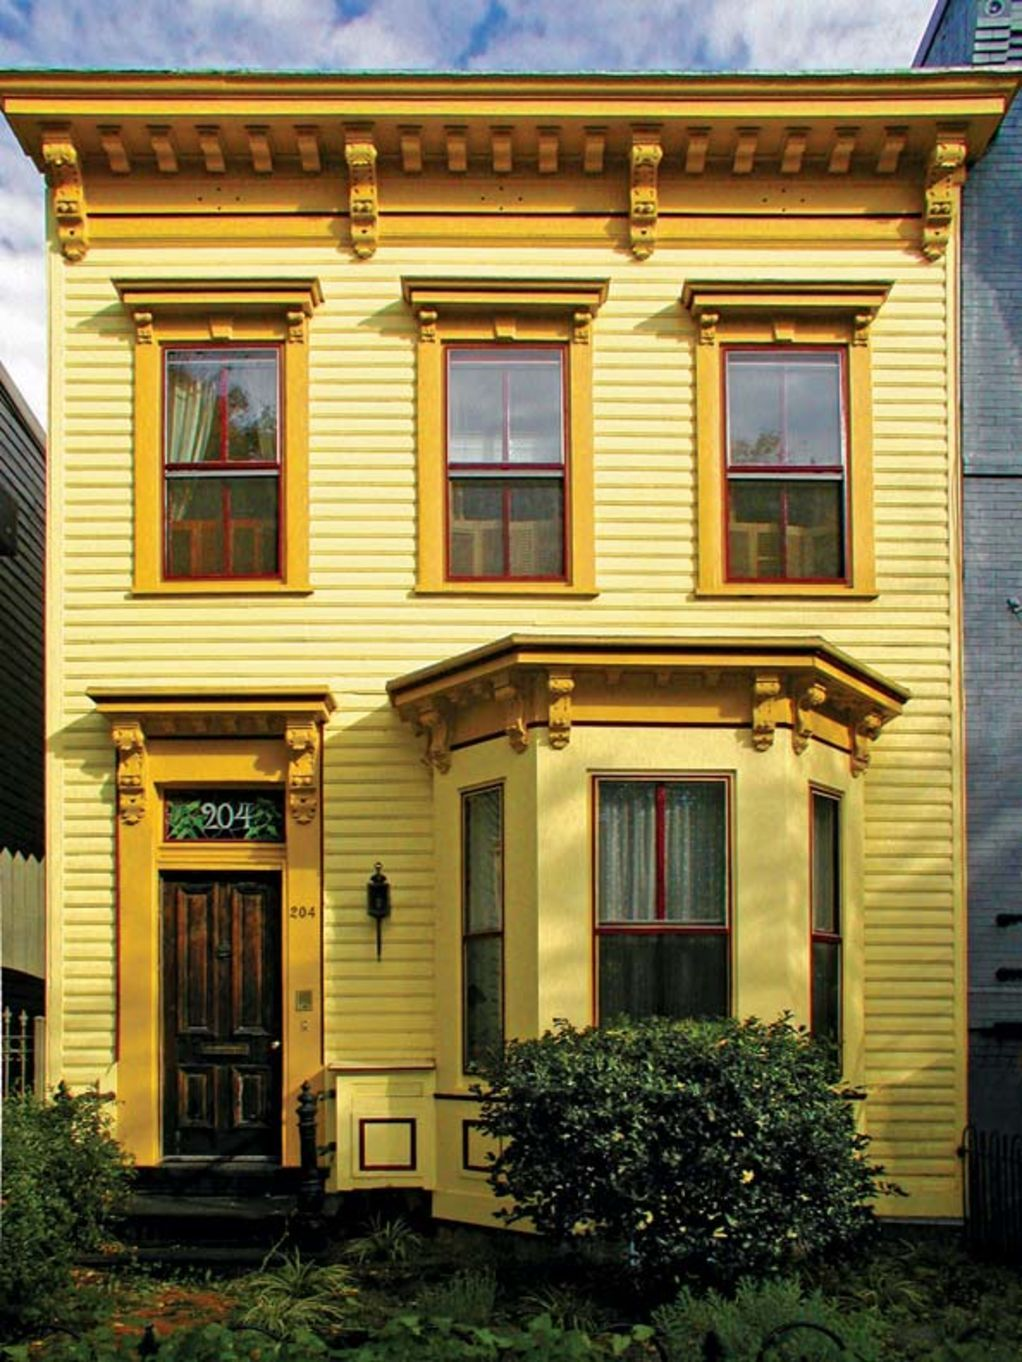 Italianate Architecture And History Old House Journal Magazine Yellow House Exterior House Architecture Design American Houses